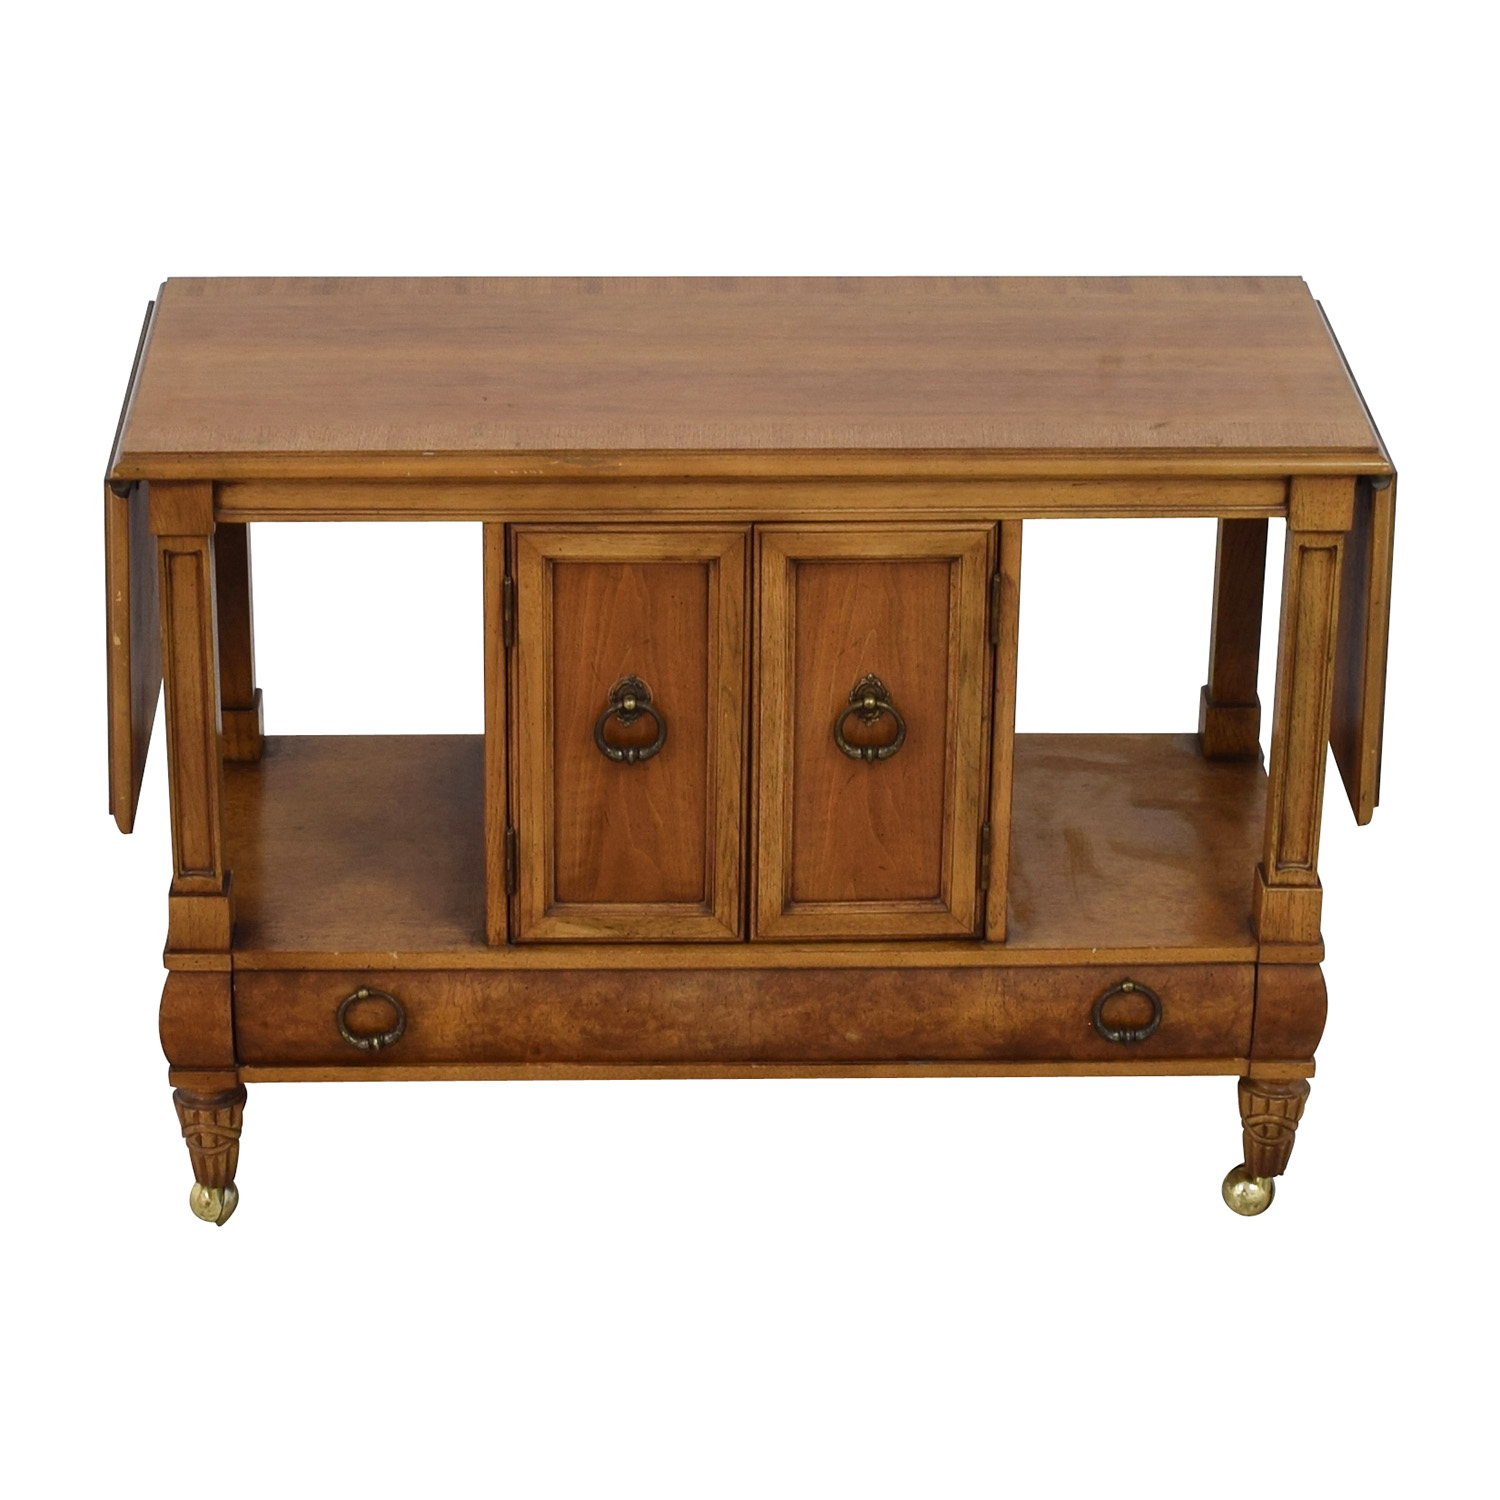 Thomasville Thomasville Wood Tea Cart with Casters Cabinets & Sideboards